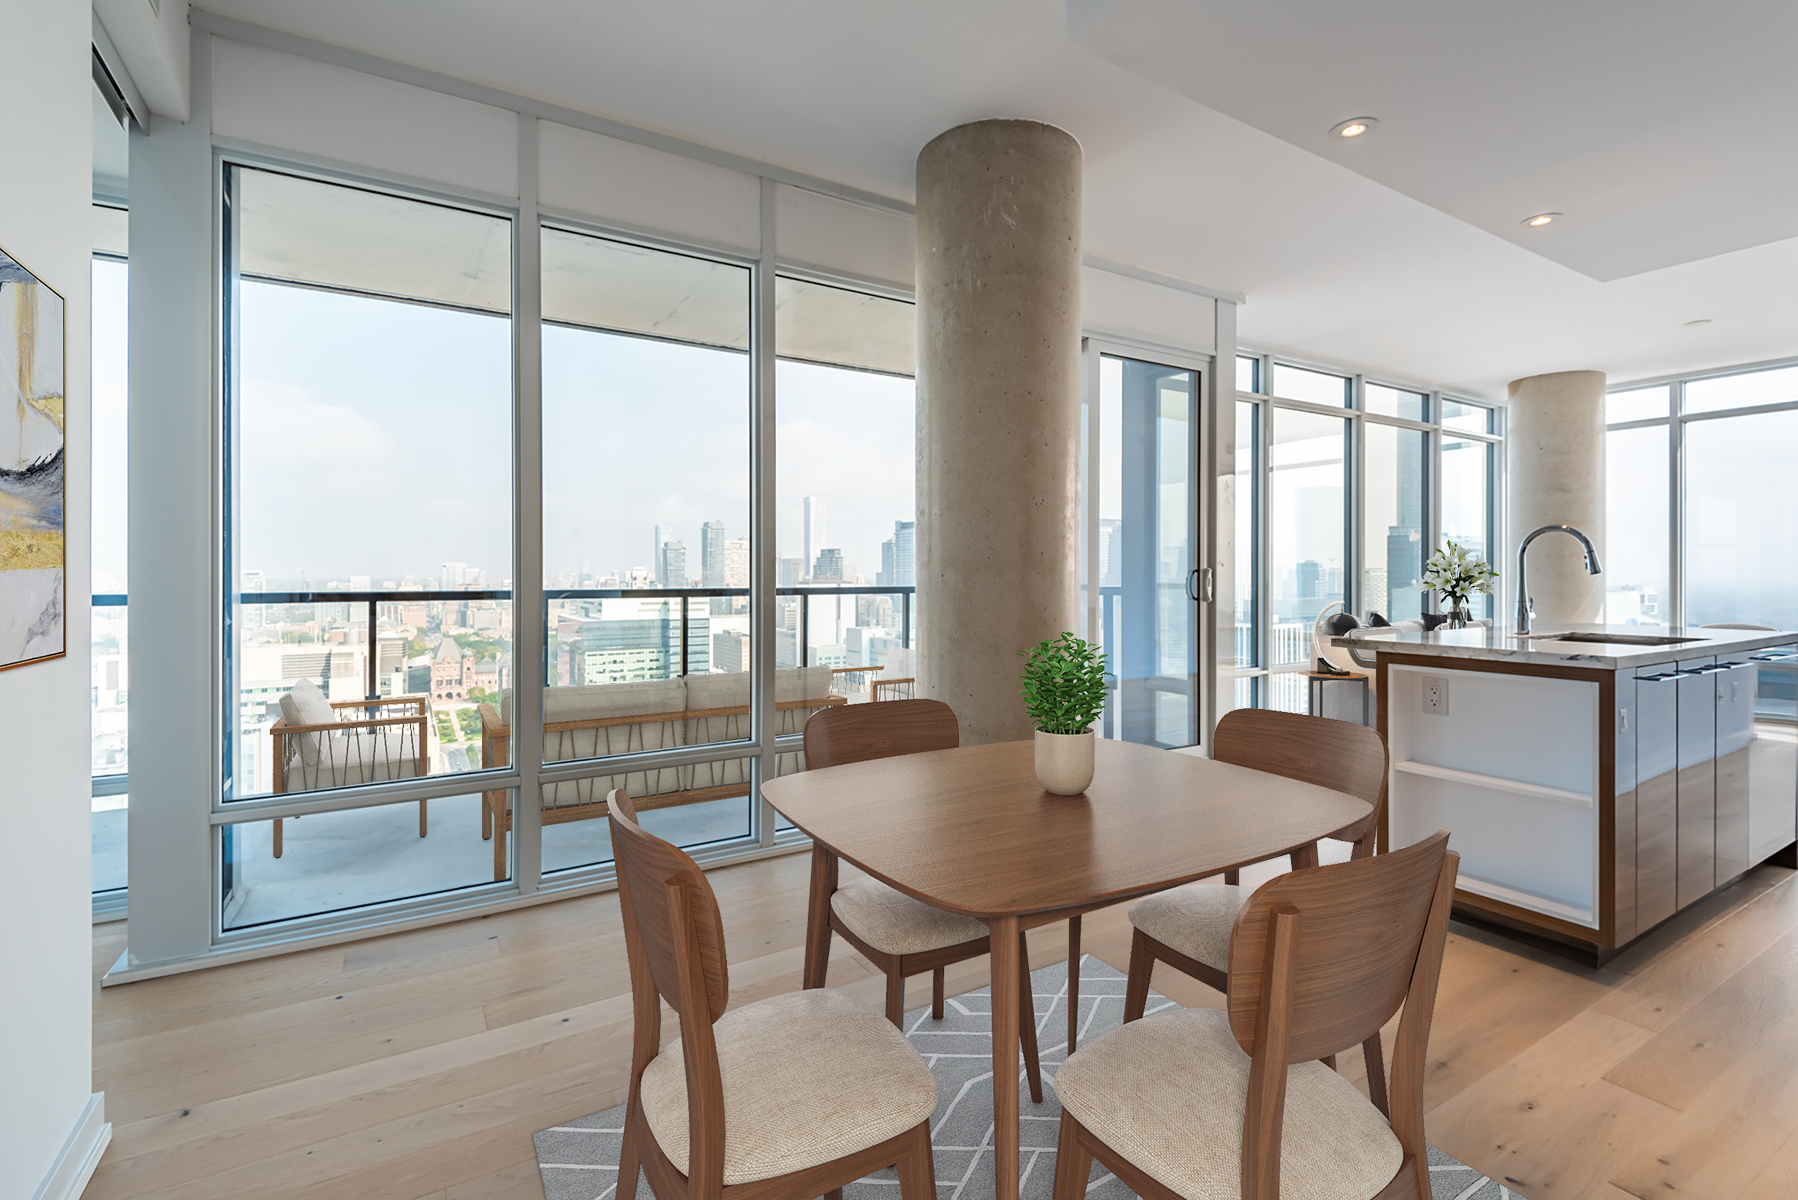 Condo dining room with table, chairs and view of Toronto.